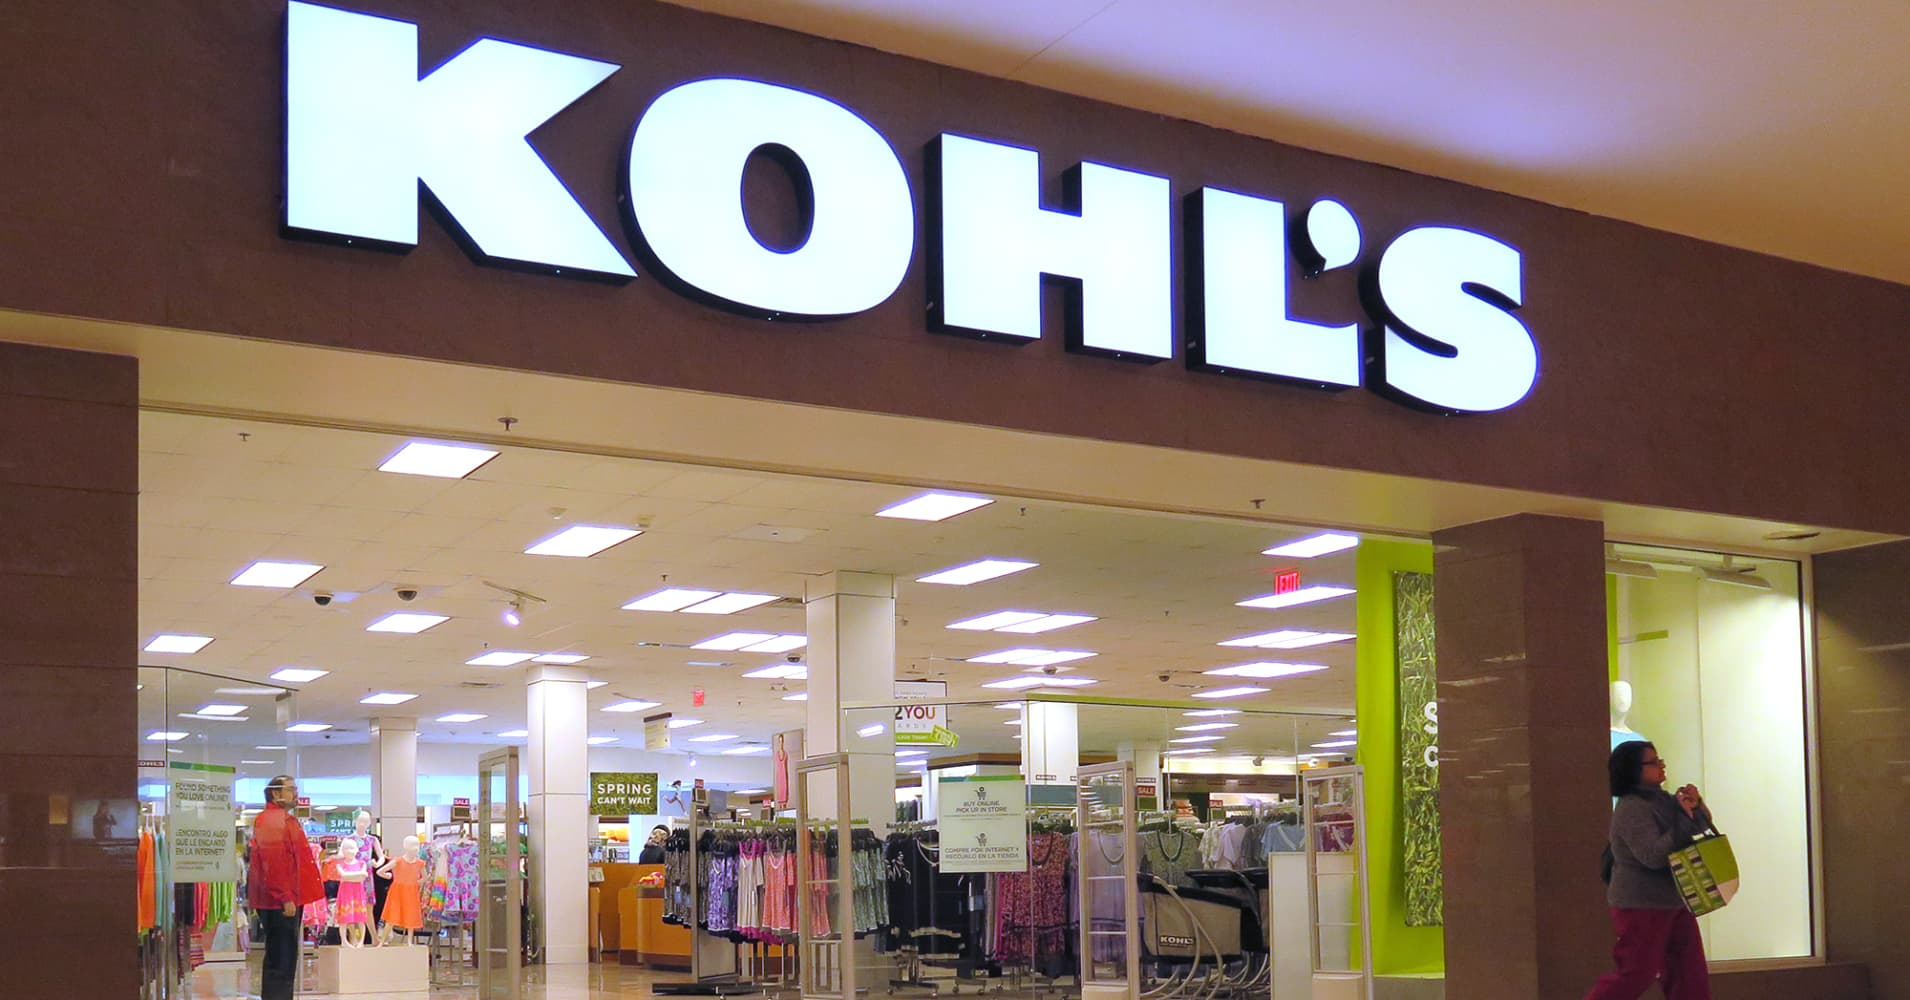 Kohl's is putting a Weight Watchers studio in one of its stores as part of a wellness push